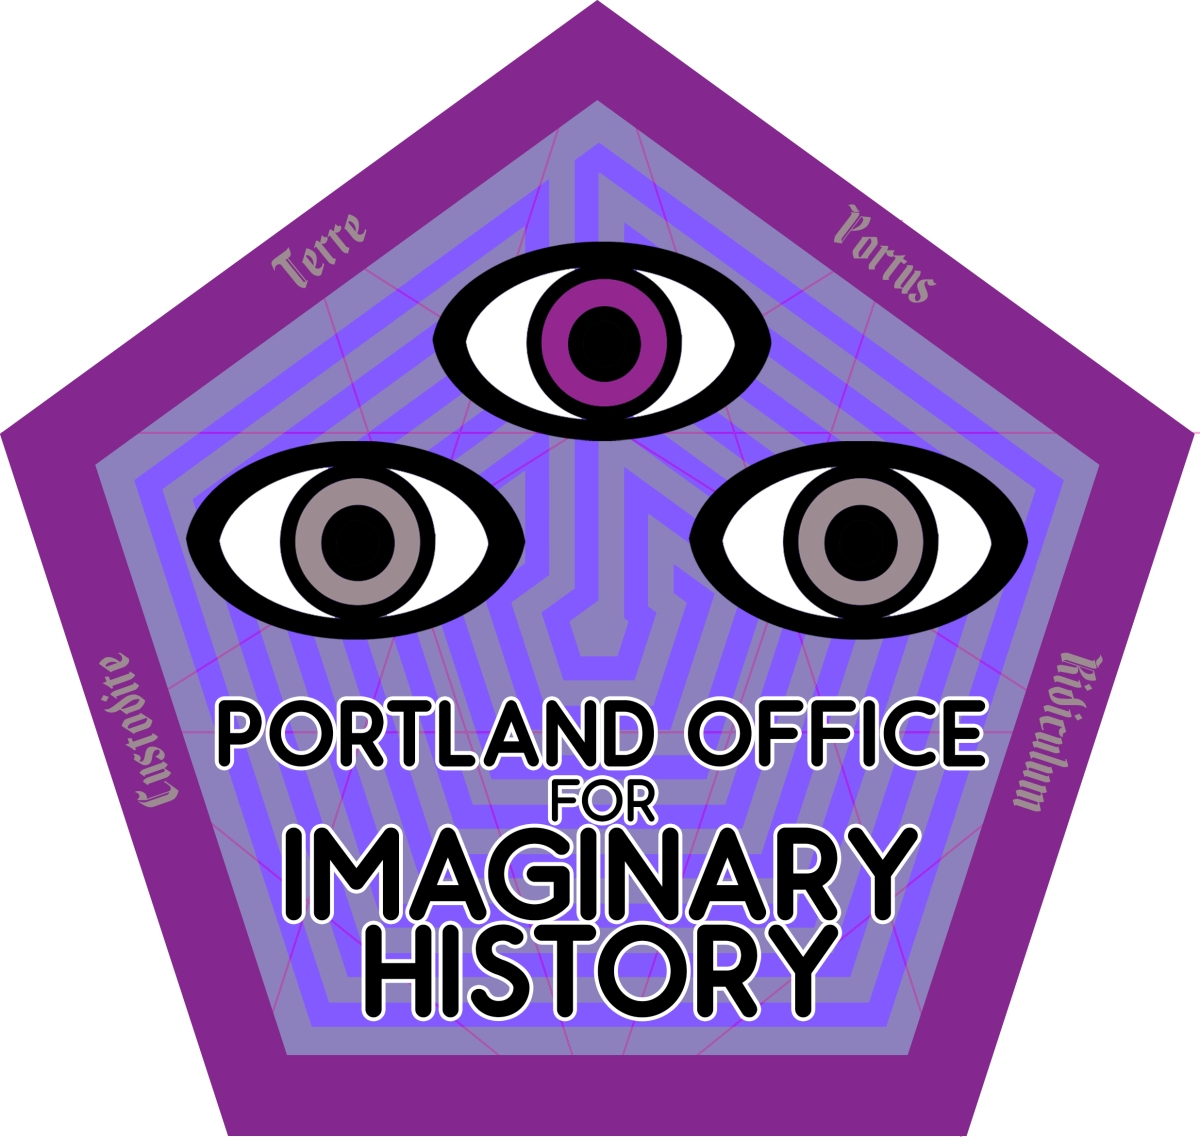 The Portland Office for Imaginary History 2016-18